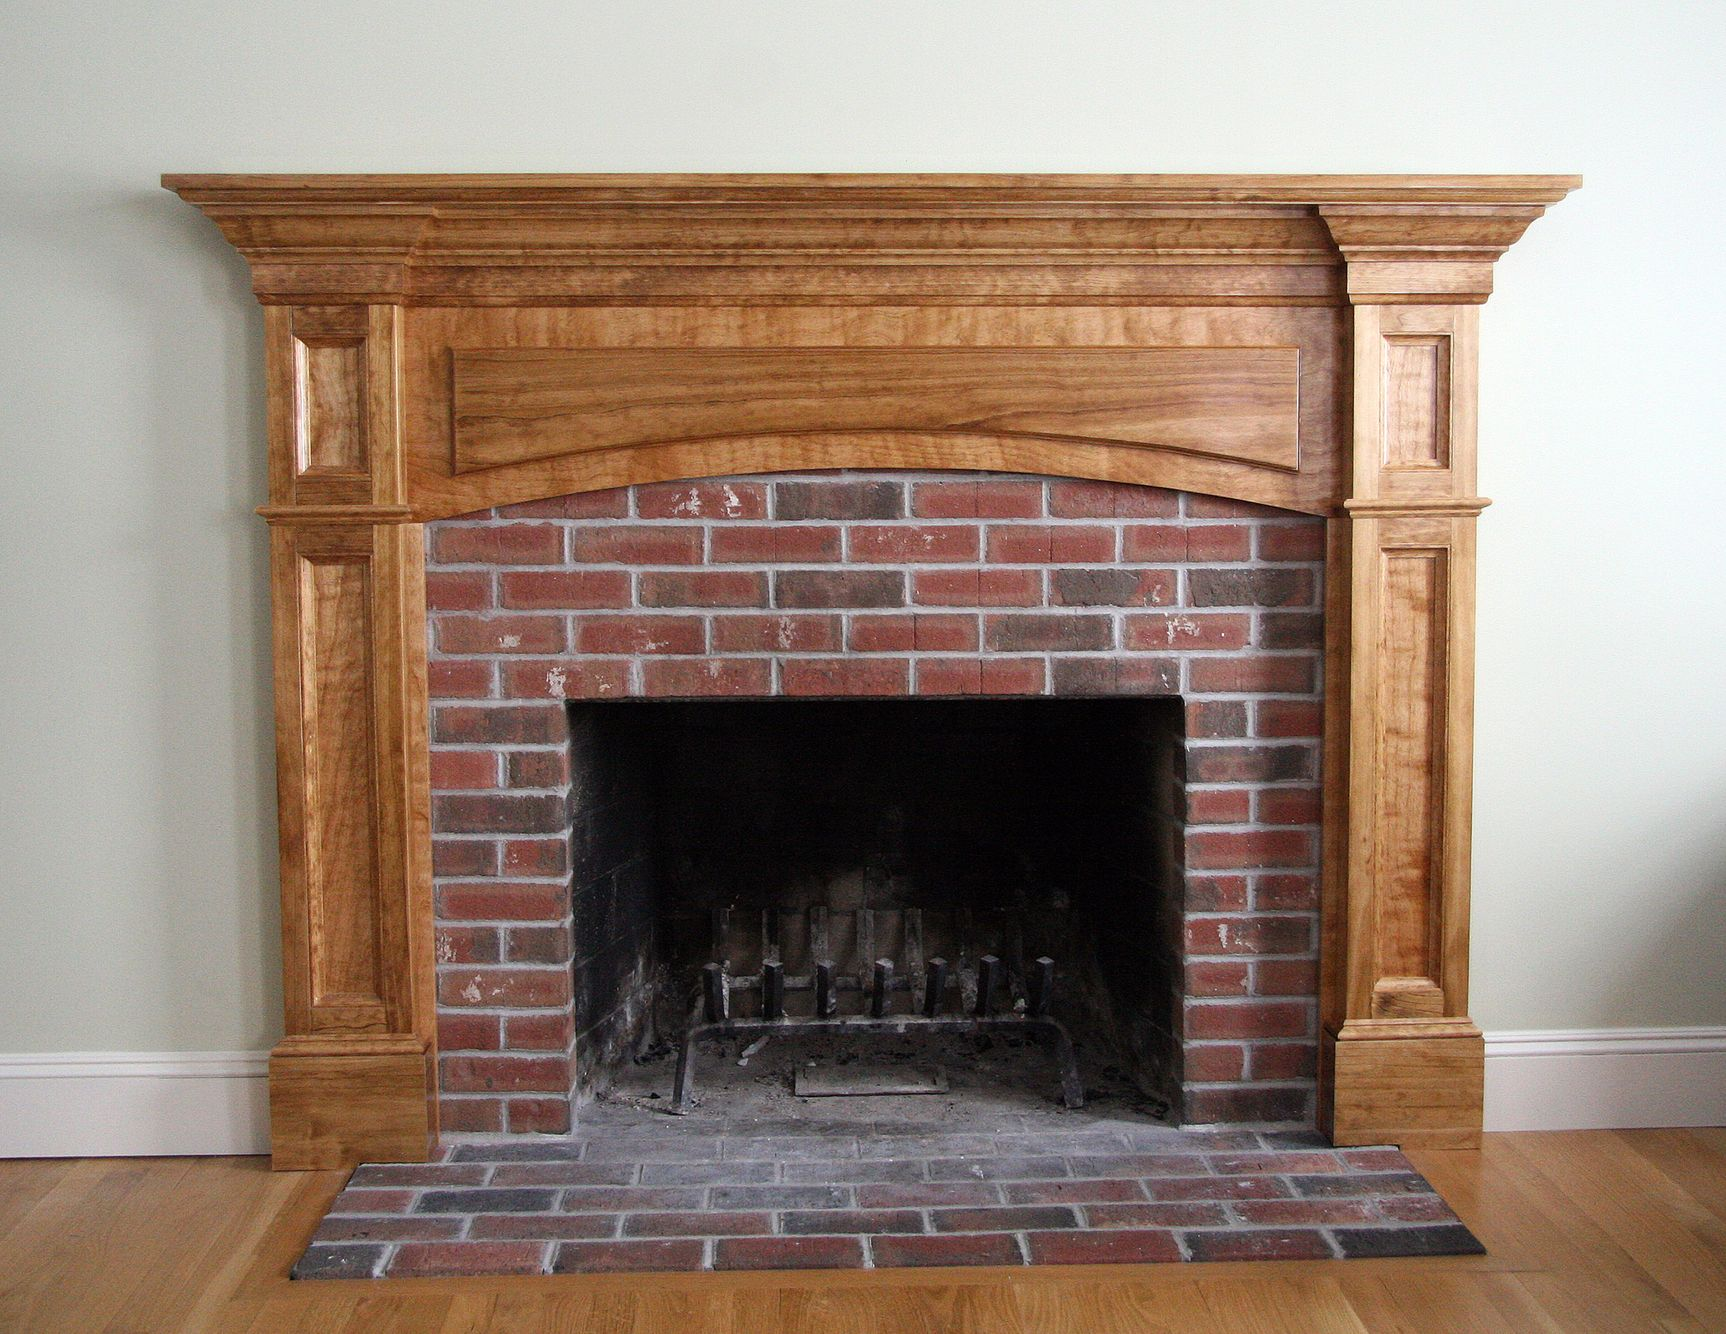 Hogan Mantel copy.jpg